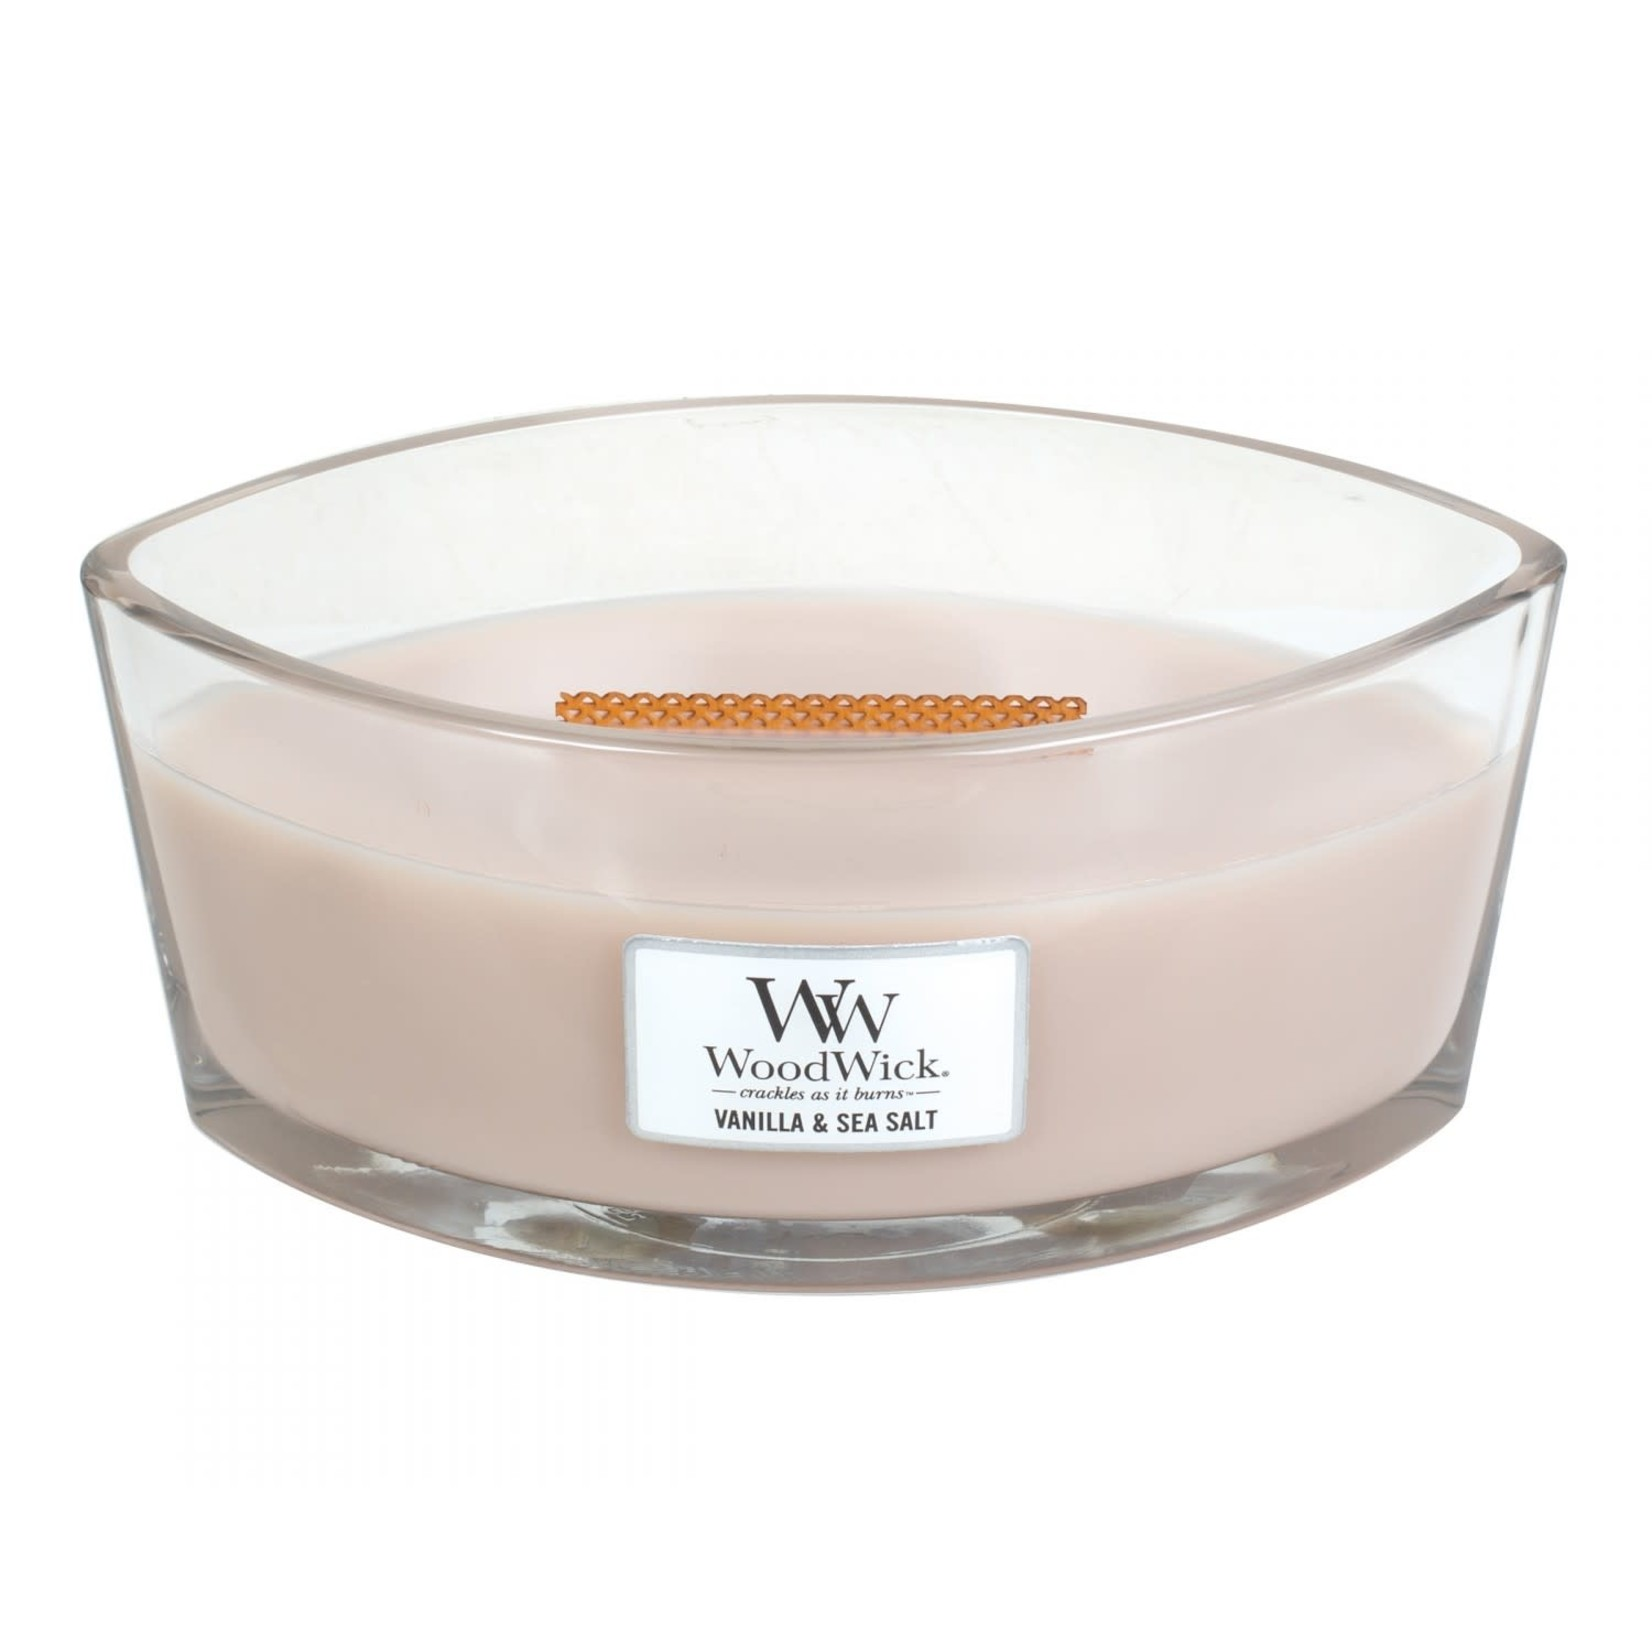 Woodwick Woodwick Vanilla & Sea Salt ellipse heartwick candle